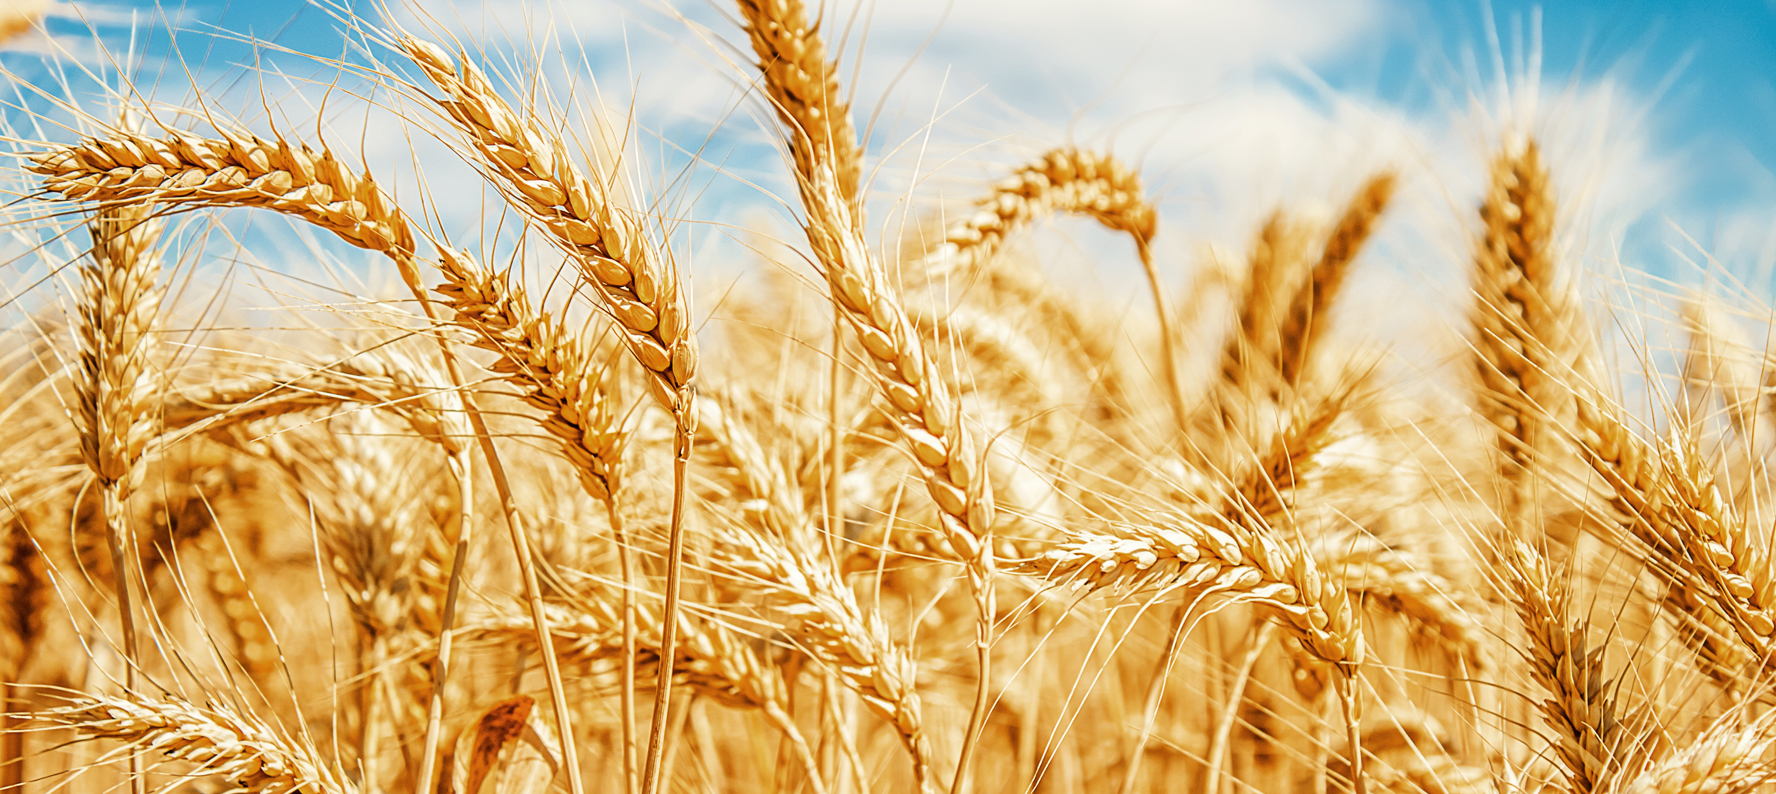 Barley is used in natural skin care products for its anti-inflammatory properties.